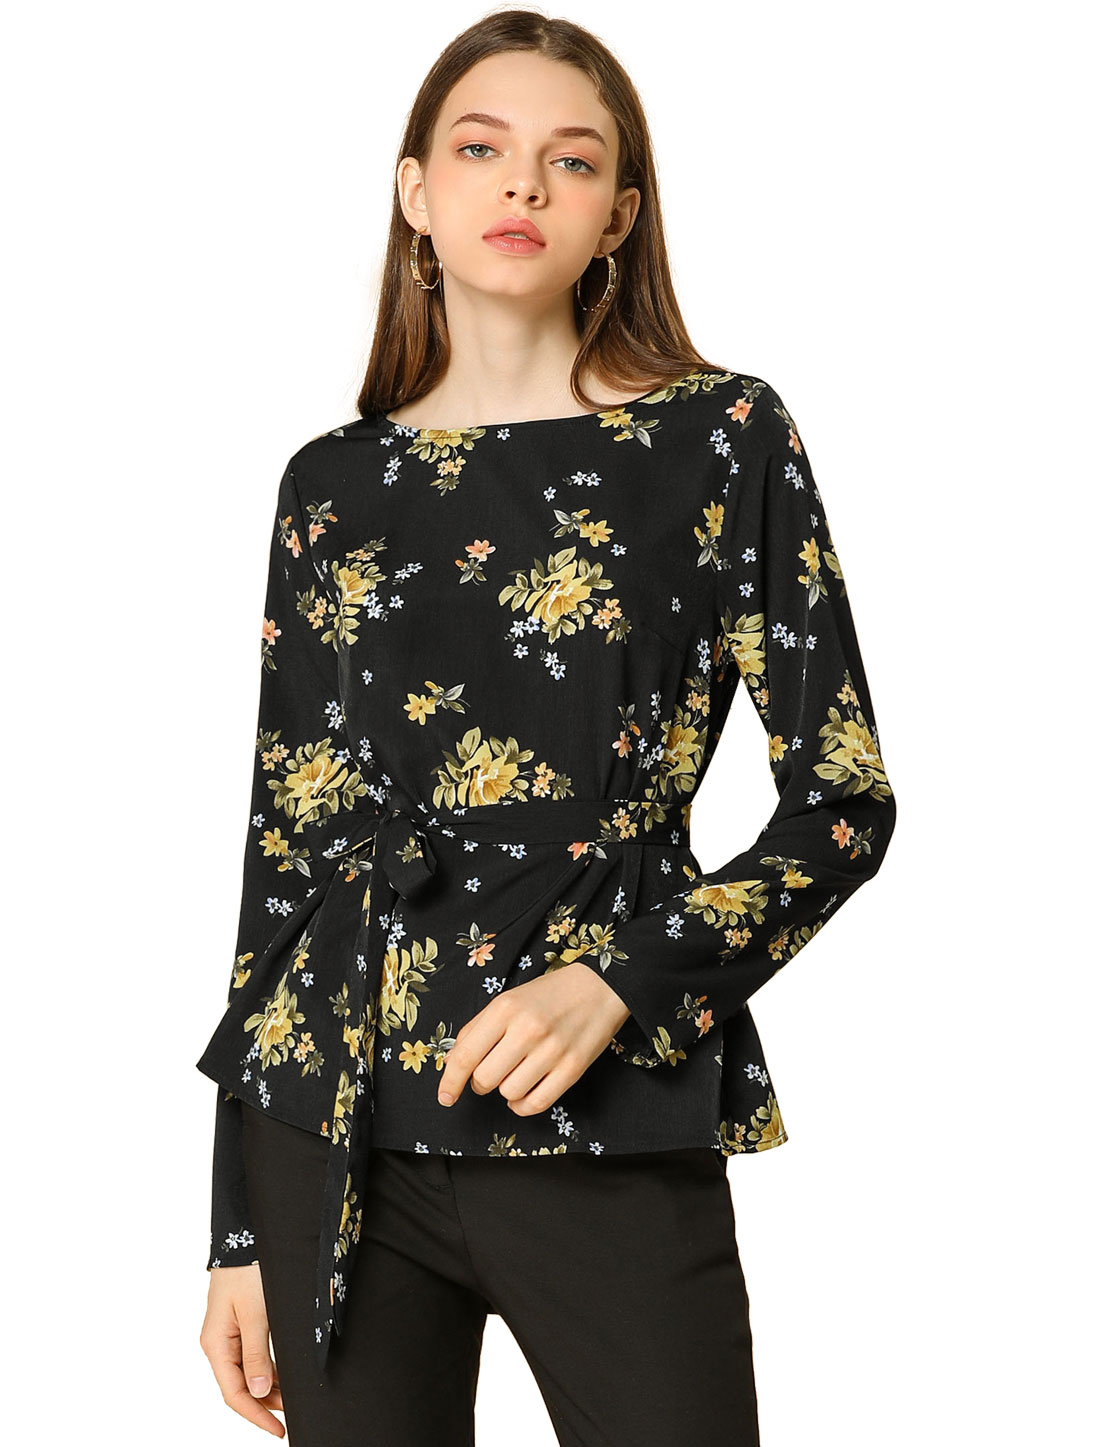 Allegra K Women's Long Sleeve Waist Belt Loose Floral Blouse Black S